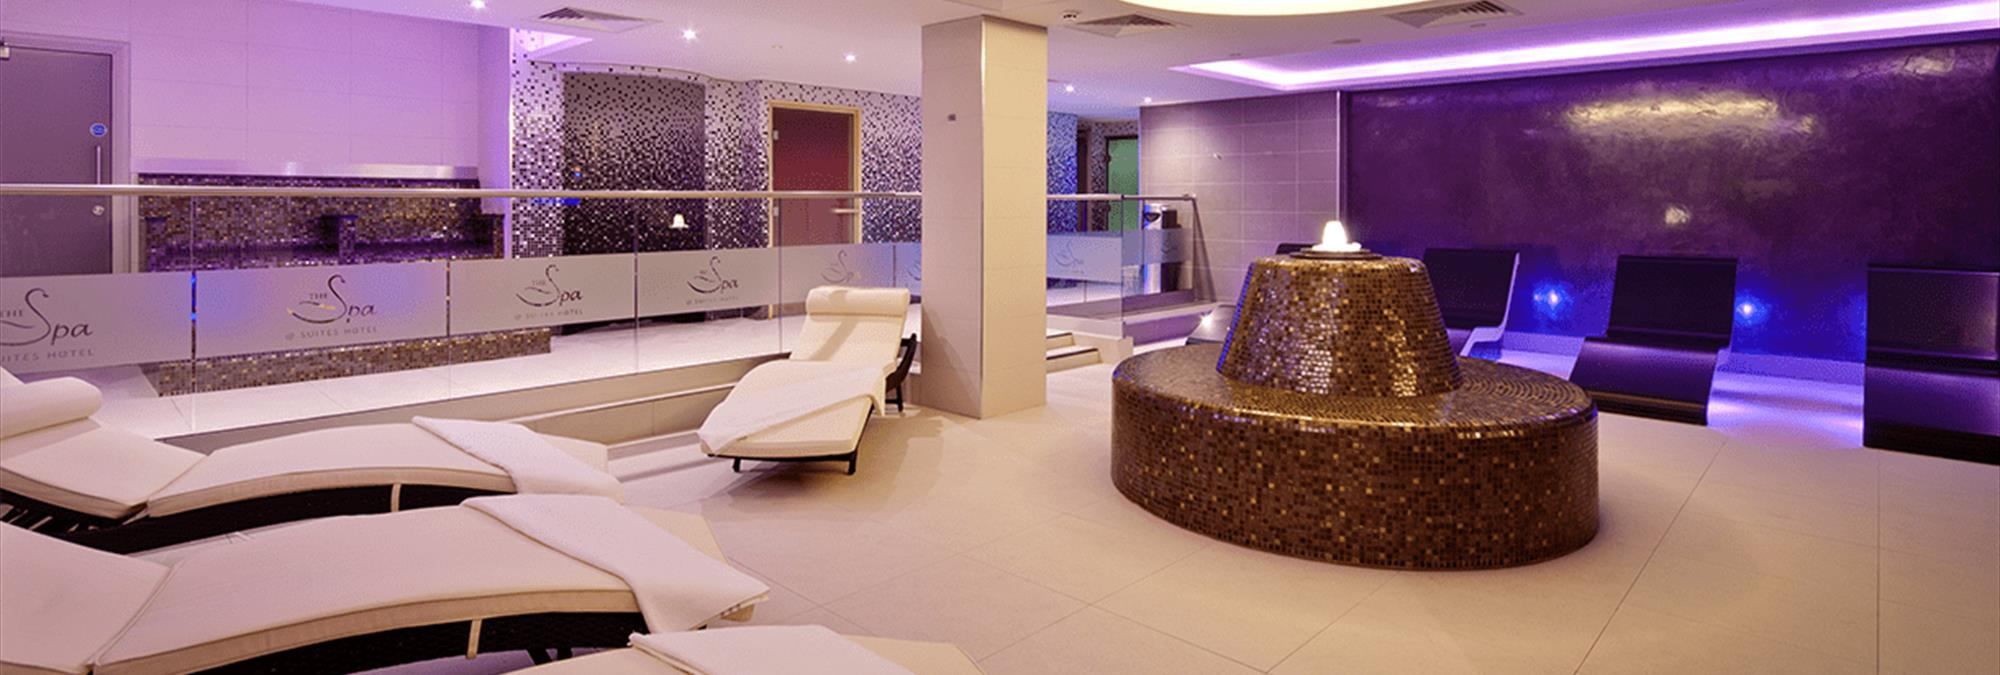 Spa @ Suites Hotel Knowsley